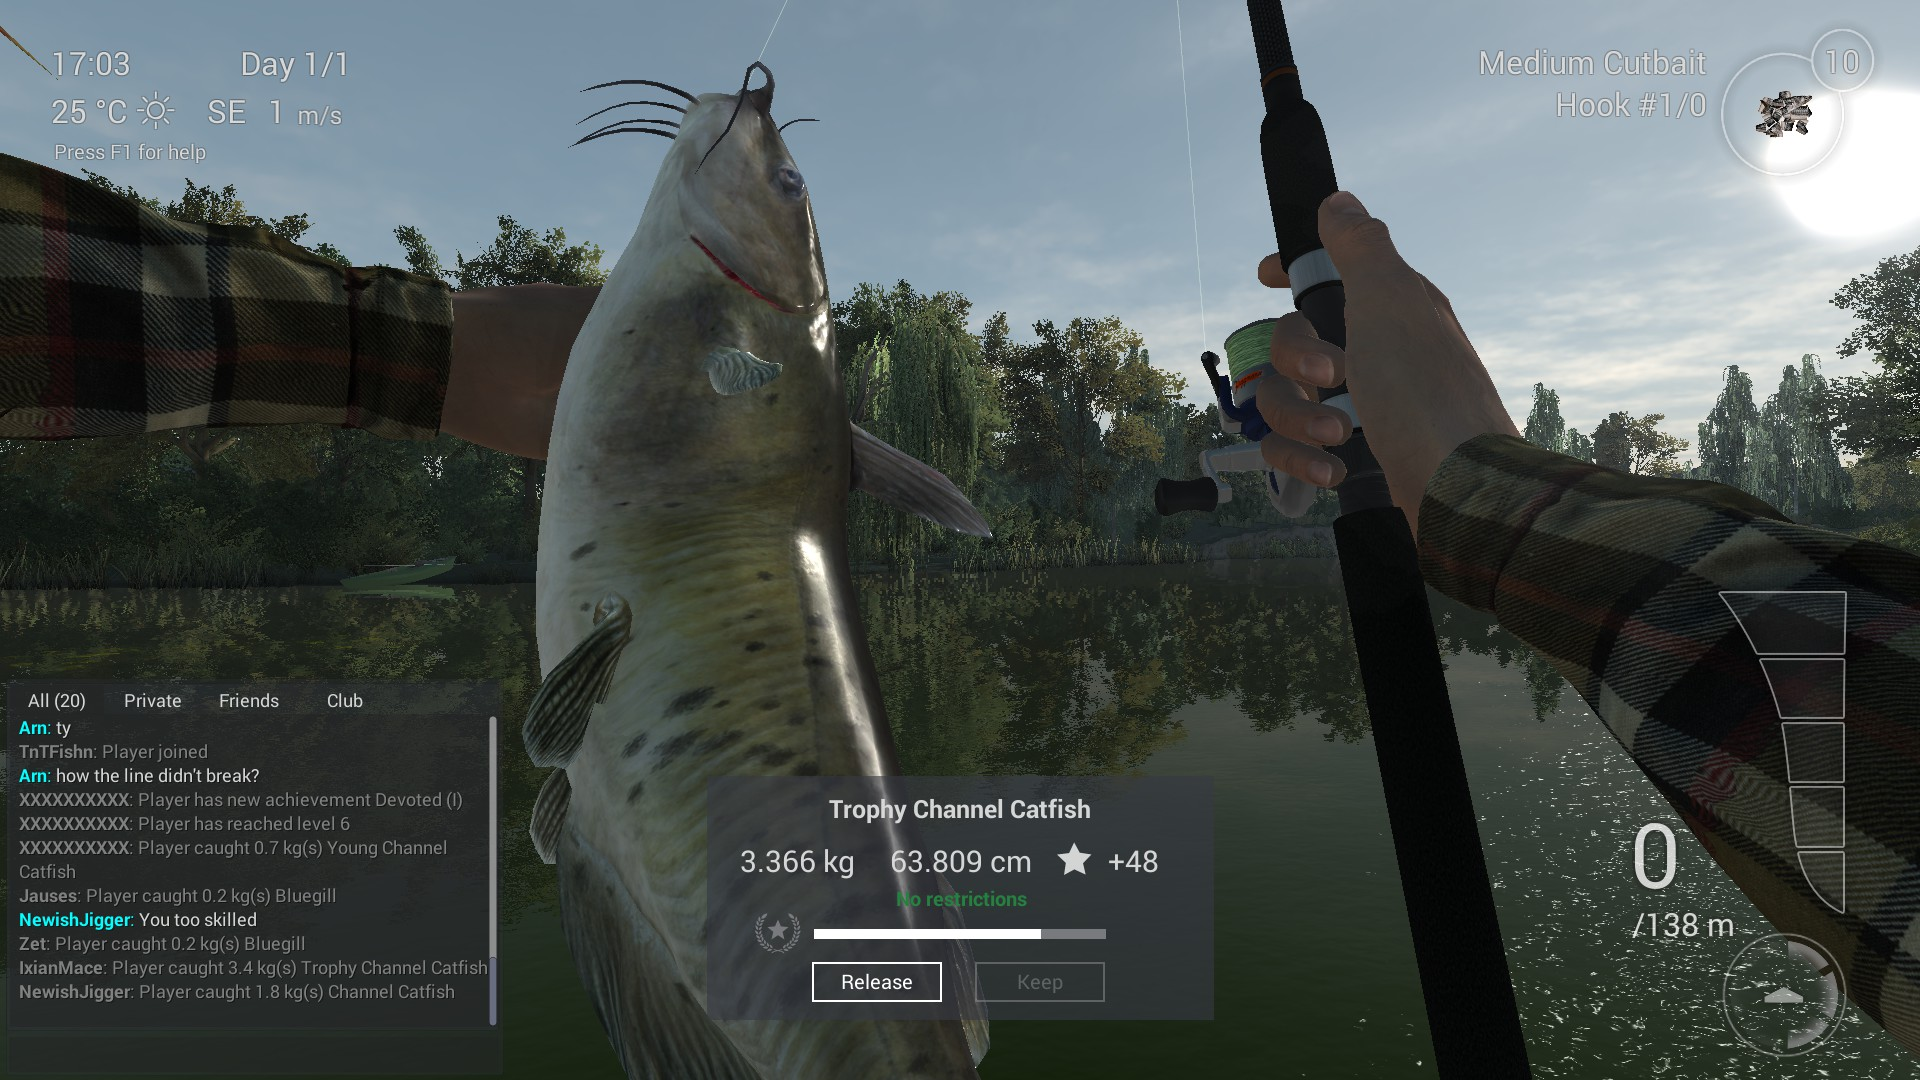 Steam Community :: Guide :: Fishing Planet - Quick Reference